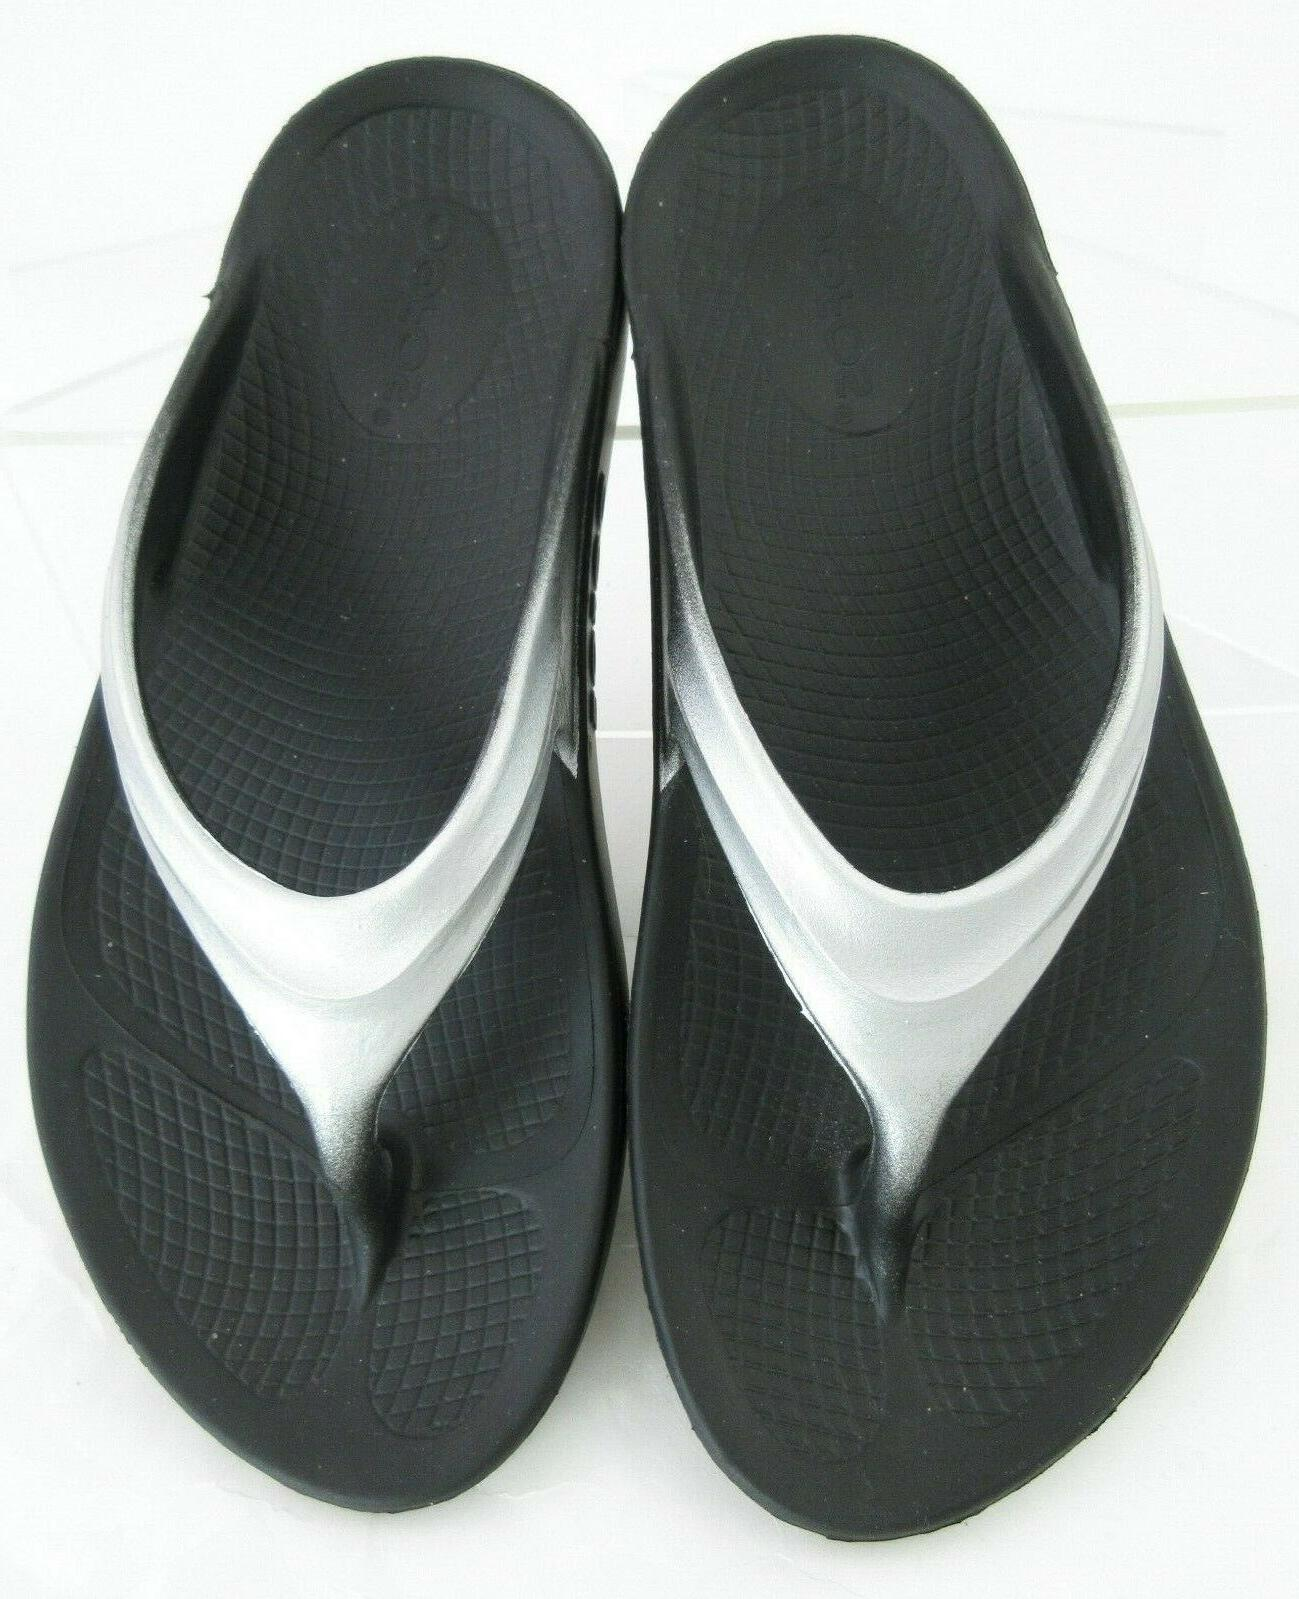 Thong Recovery Sandals Black Cloud